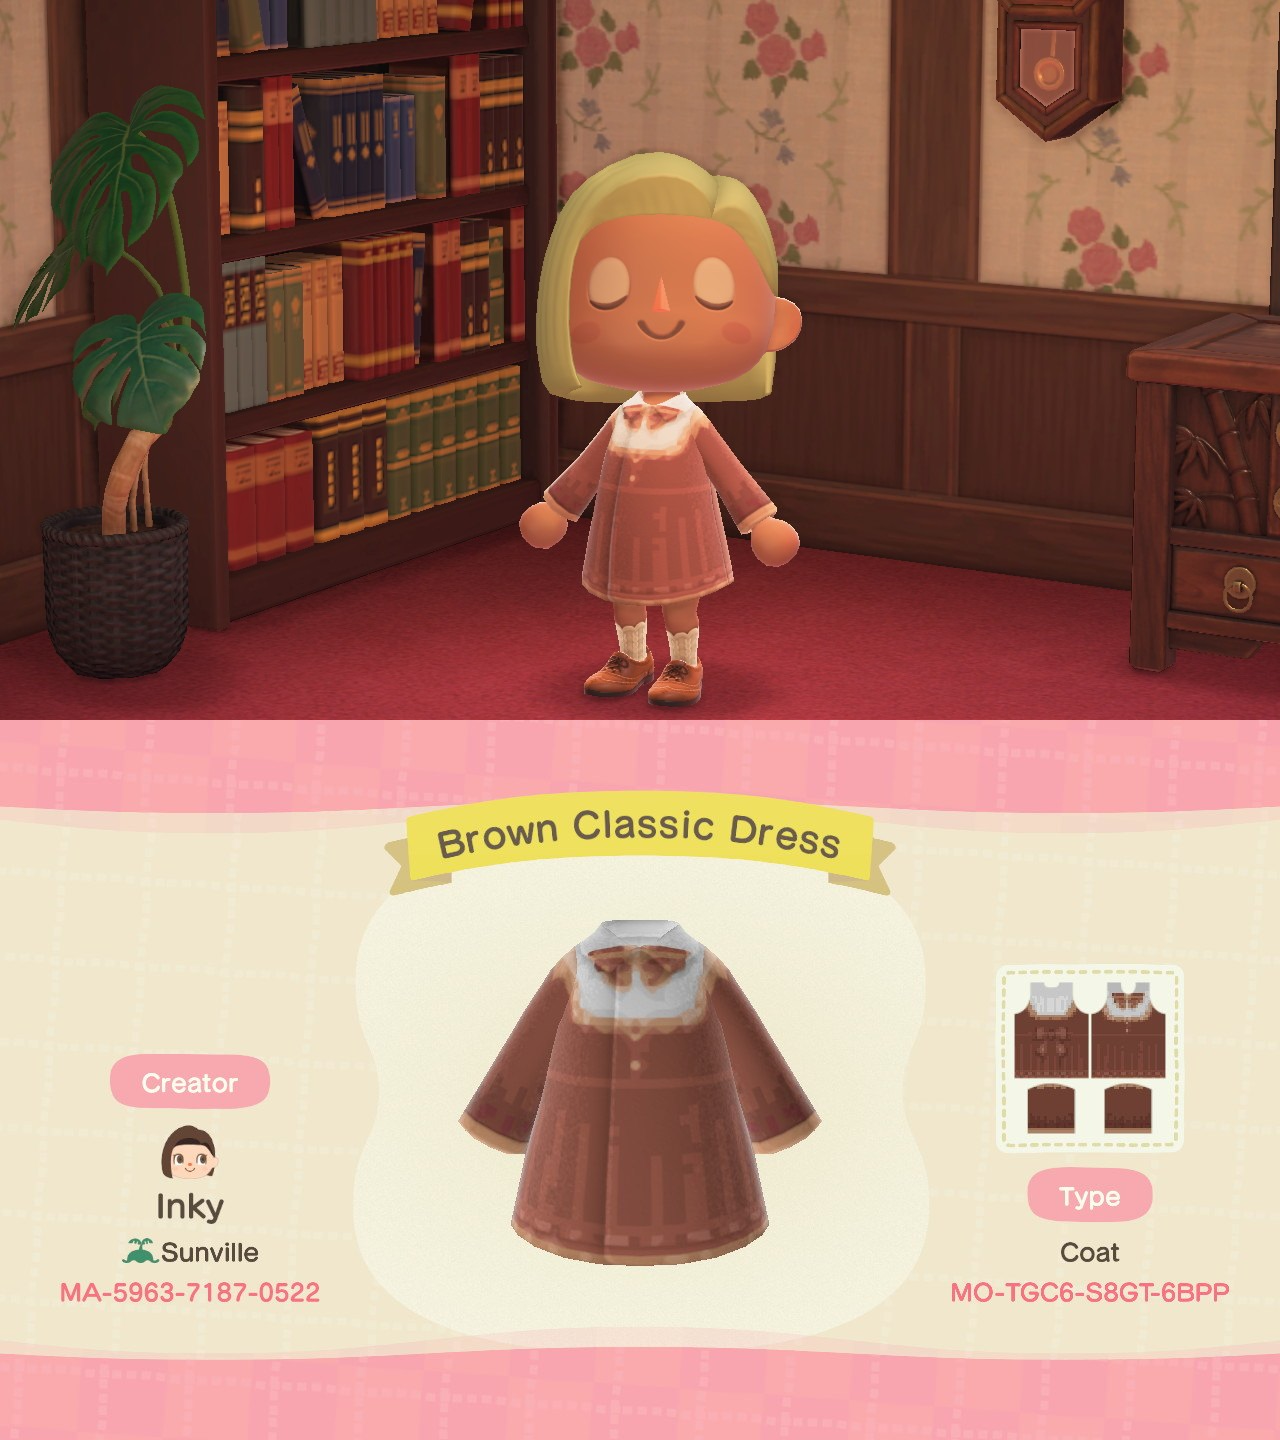 Brown Classic Dress (inspired by Pocket Camp)